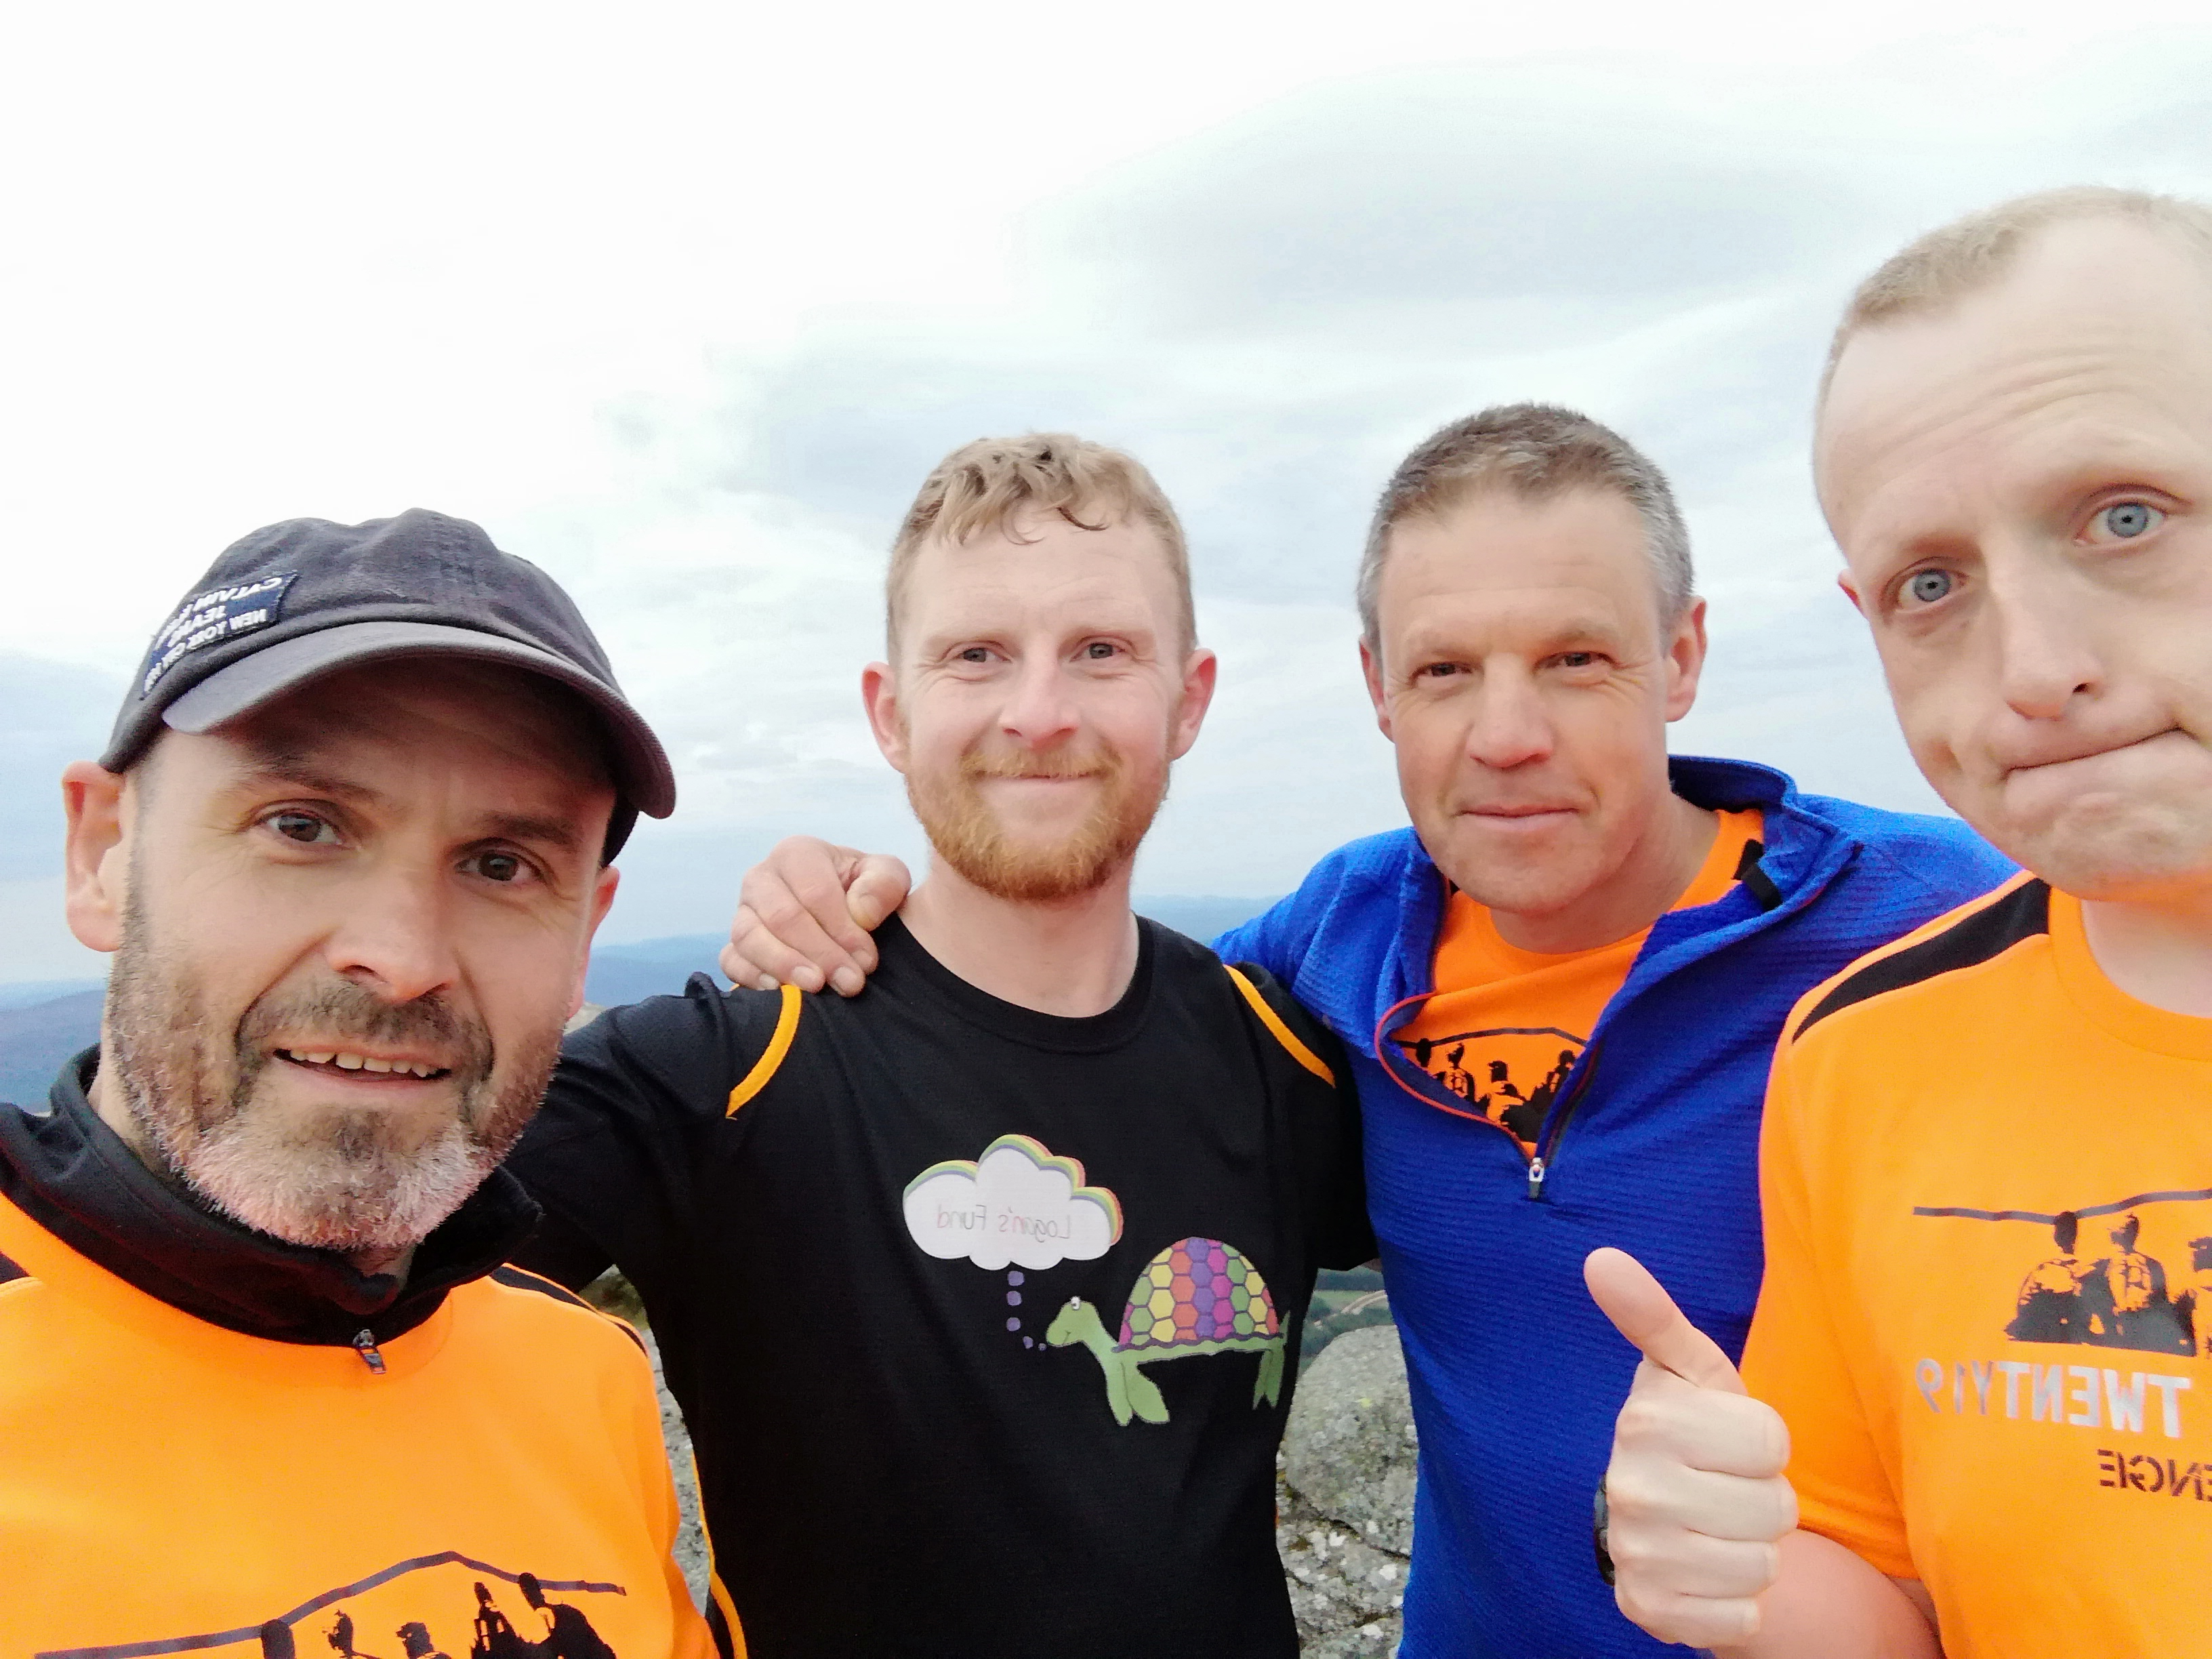 : Cameron Mackintosh, Gary Ewen, Peter Duggie, John Norman, all pictured, are going to be climbing Ben Rinnes with John Mccruden.